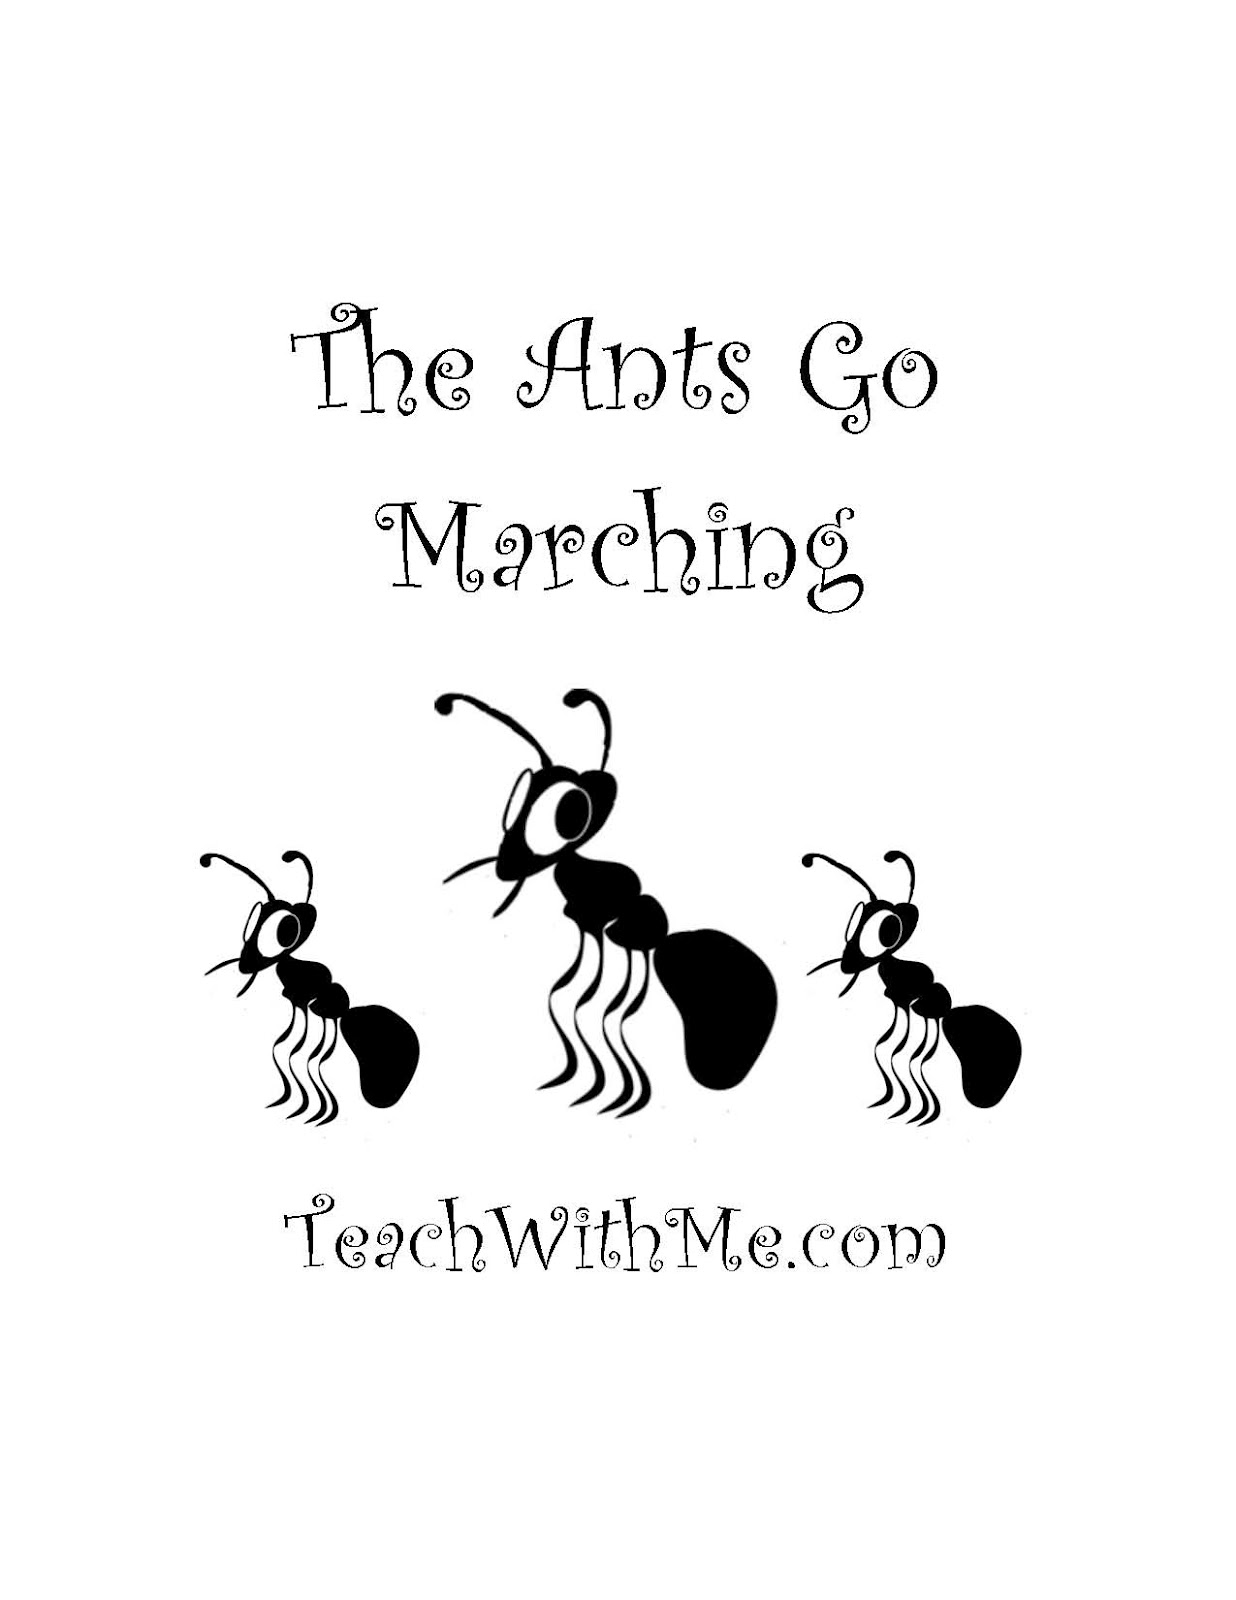 Ant clipart marching Marching collection Ants online clipart